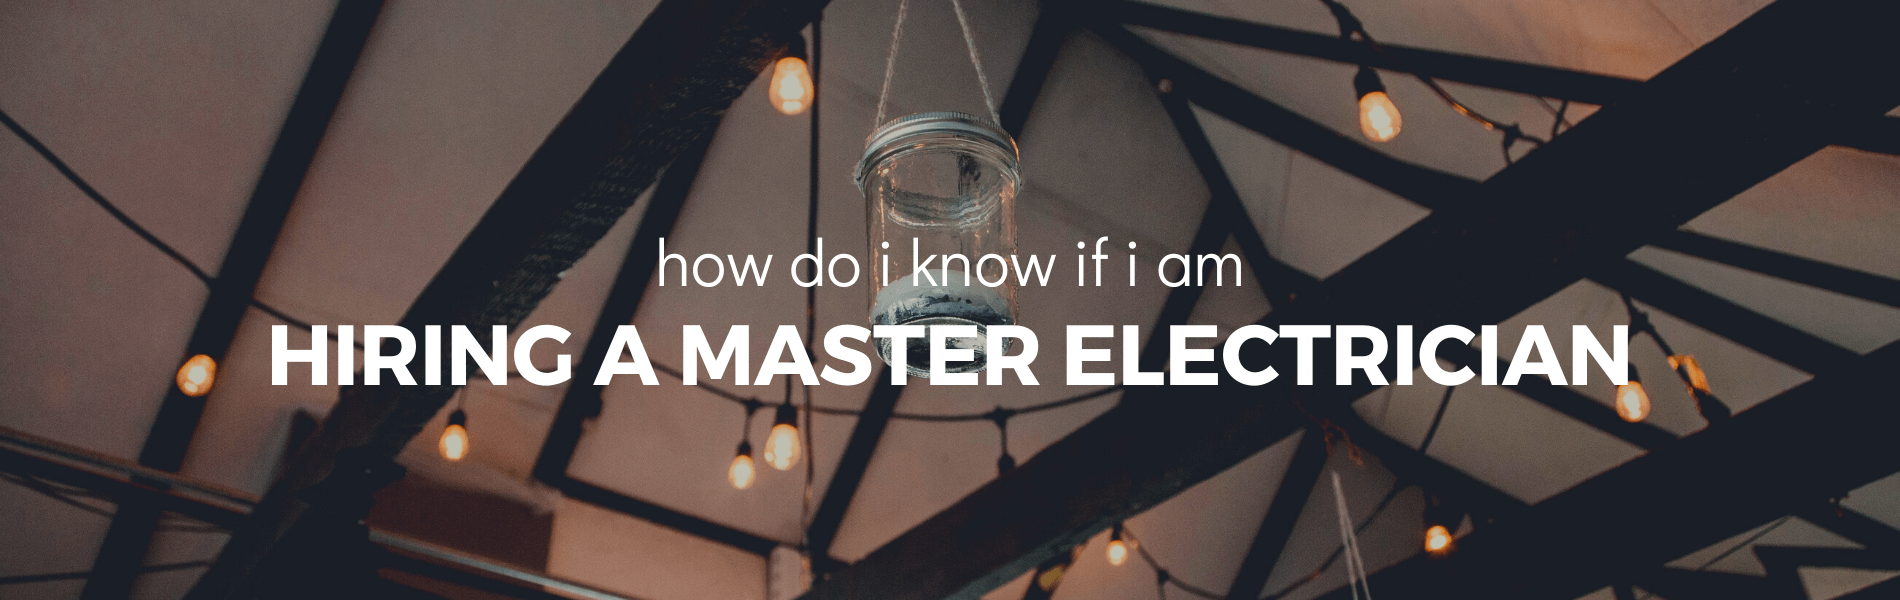 how do i know if i am hiring a master electrician